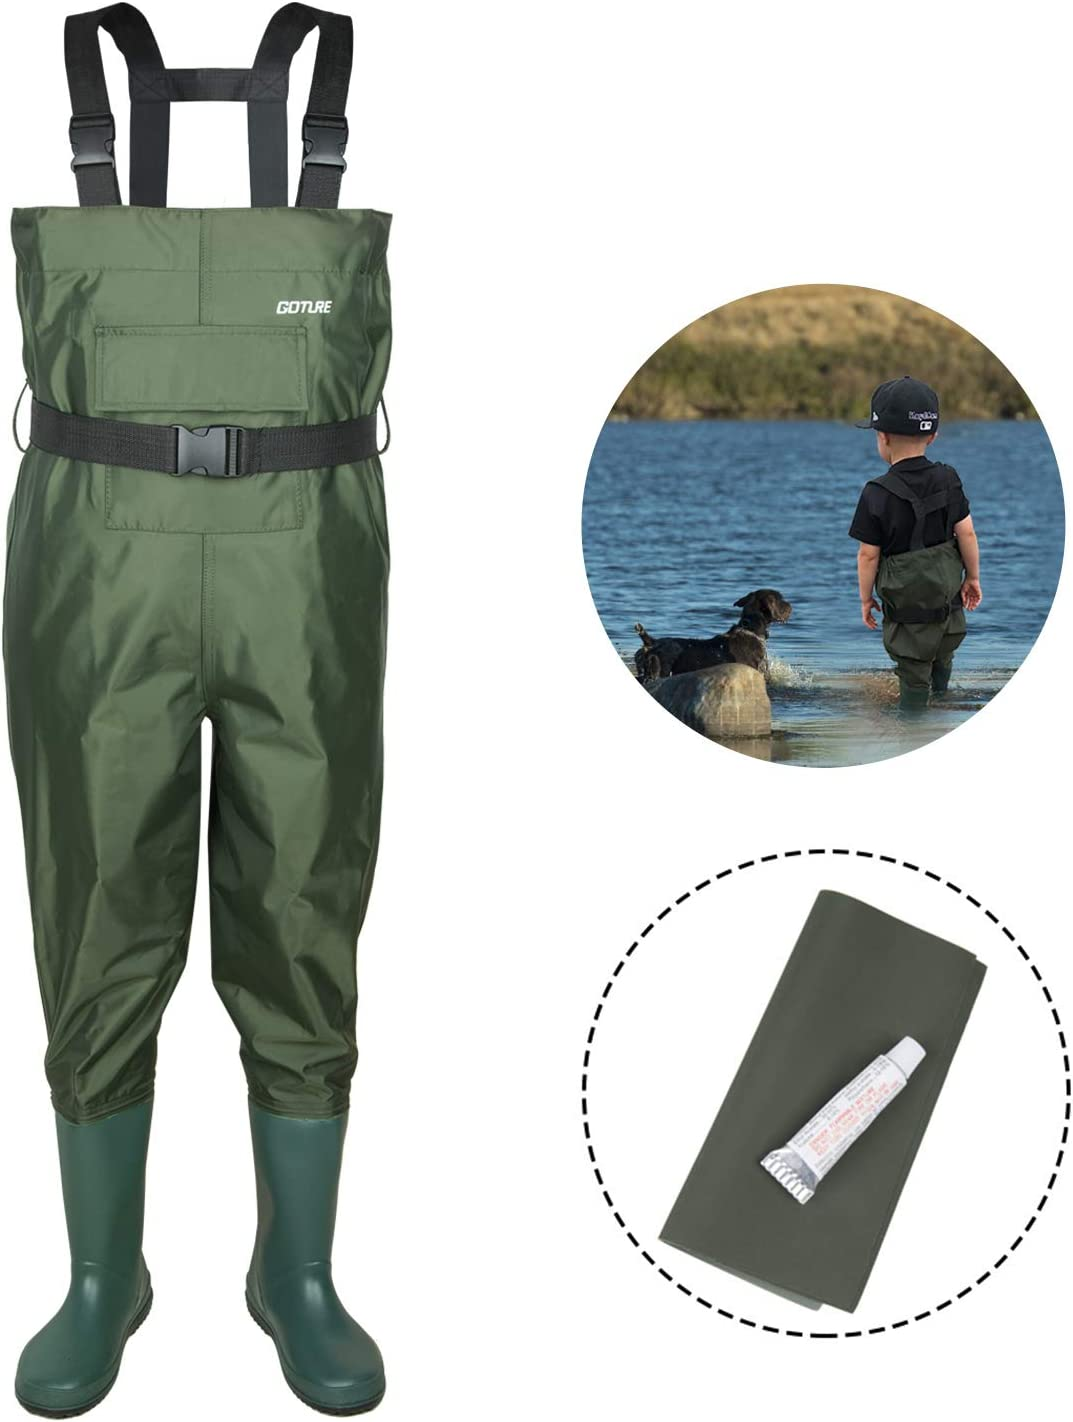 Goture Chest Waders for Kids - Lightweight and Breathable Durable PVC Fishing Waders for Toddler and Children, Army Green Waterproof Hip Waders for Boy and Girl with Bootfoot